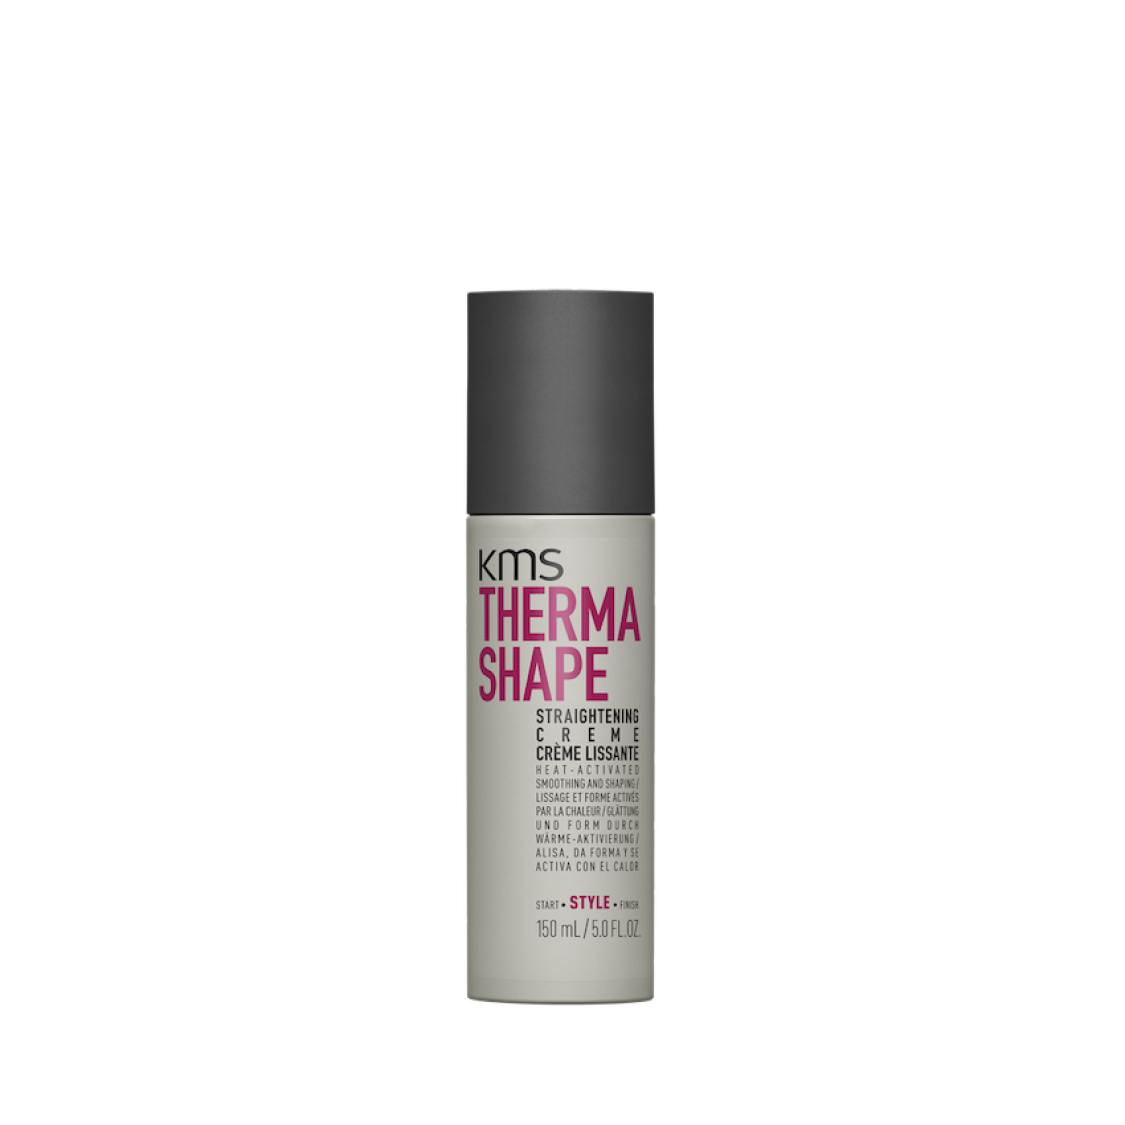 KMS - Therma Shape Straightening Creme 150ml